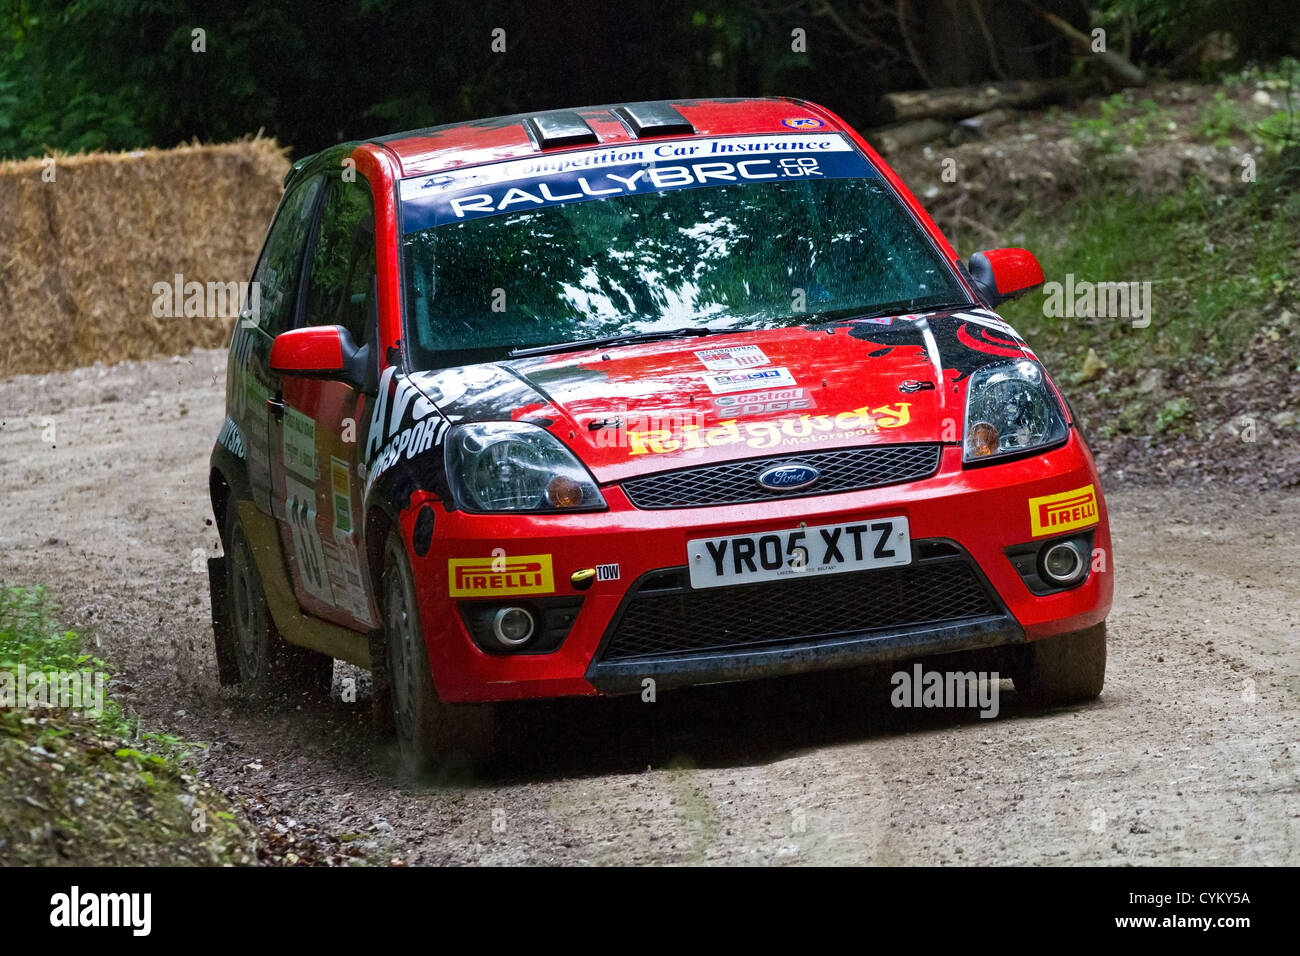 2005 ford fiesta st with driver gethin jones on the rally stage at the 2012 goodwood